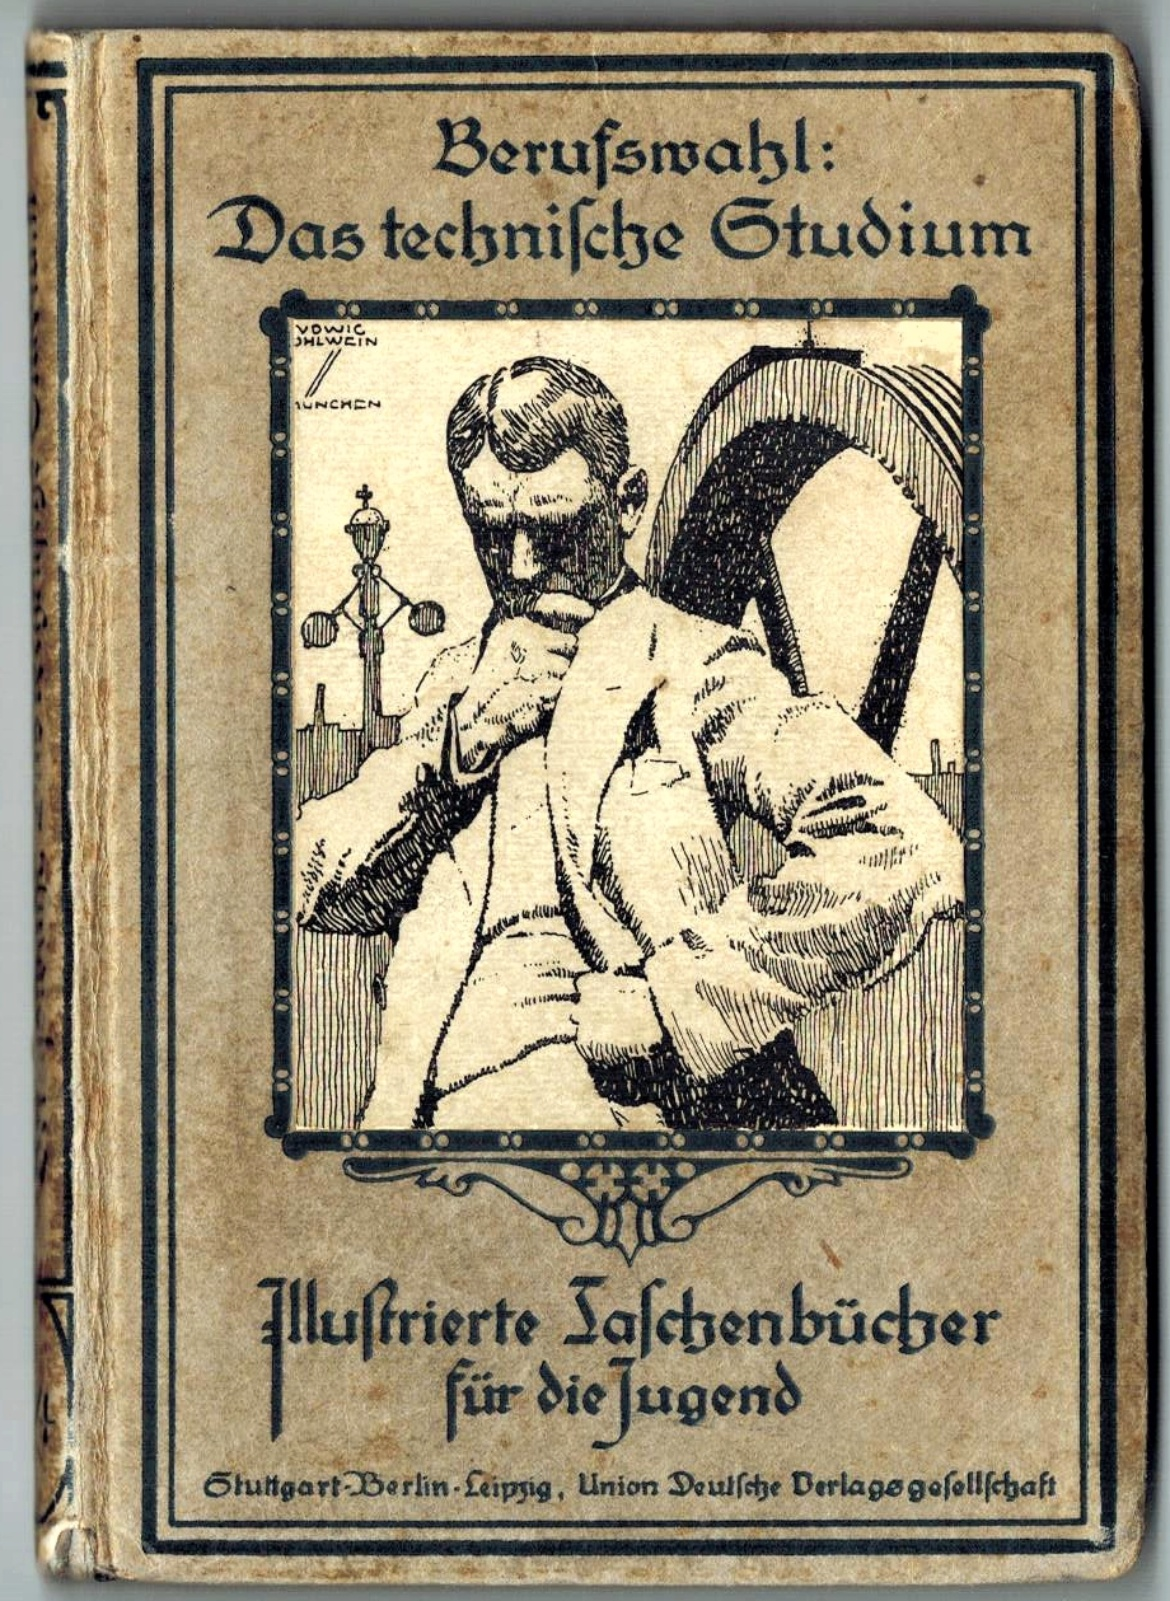 the cover of the guide book